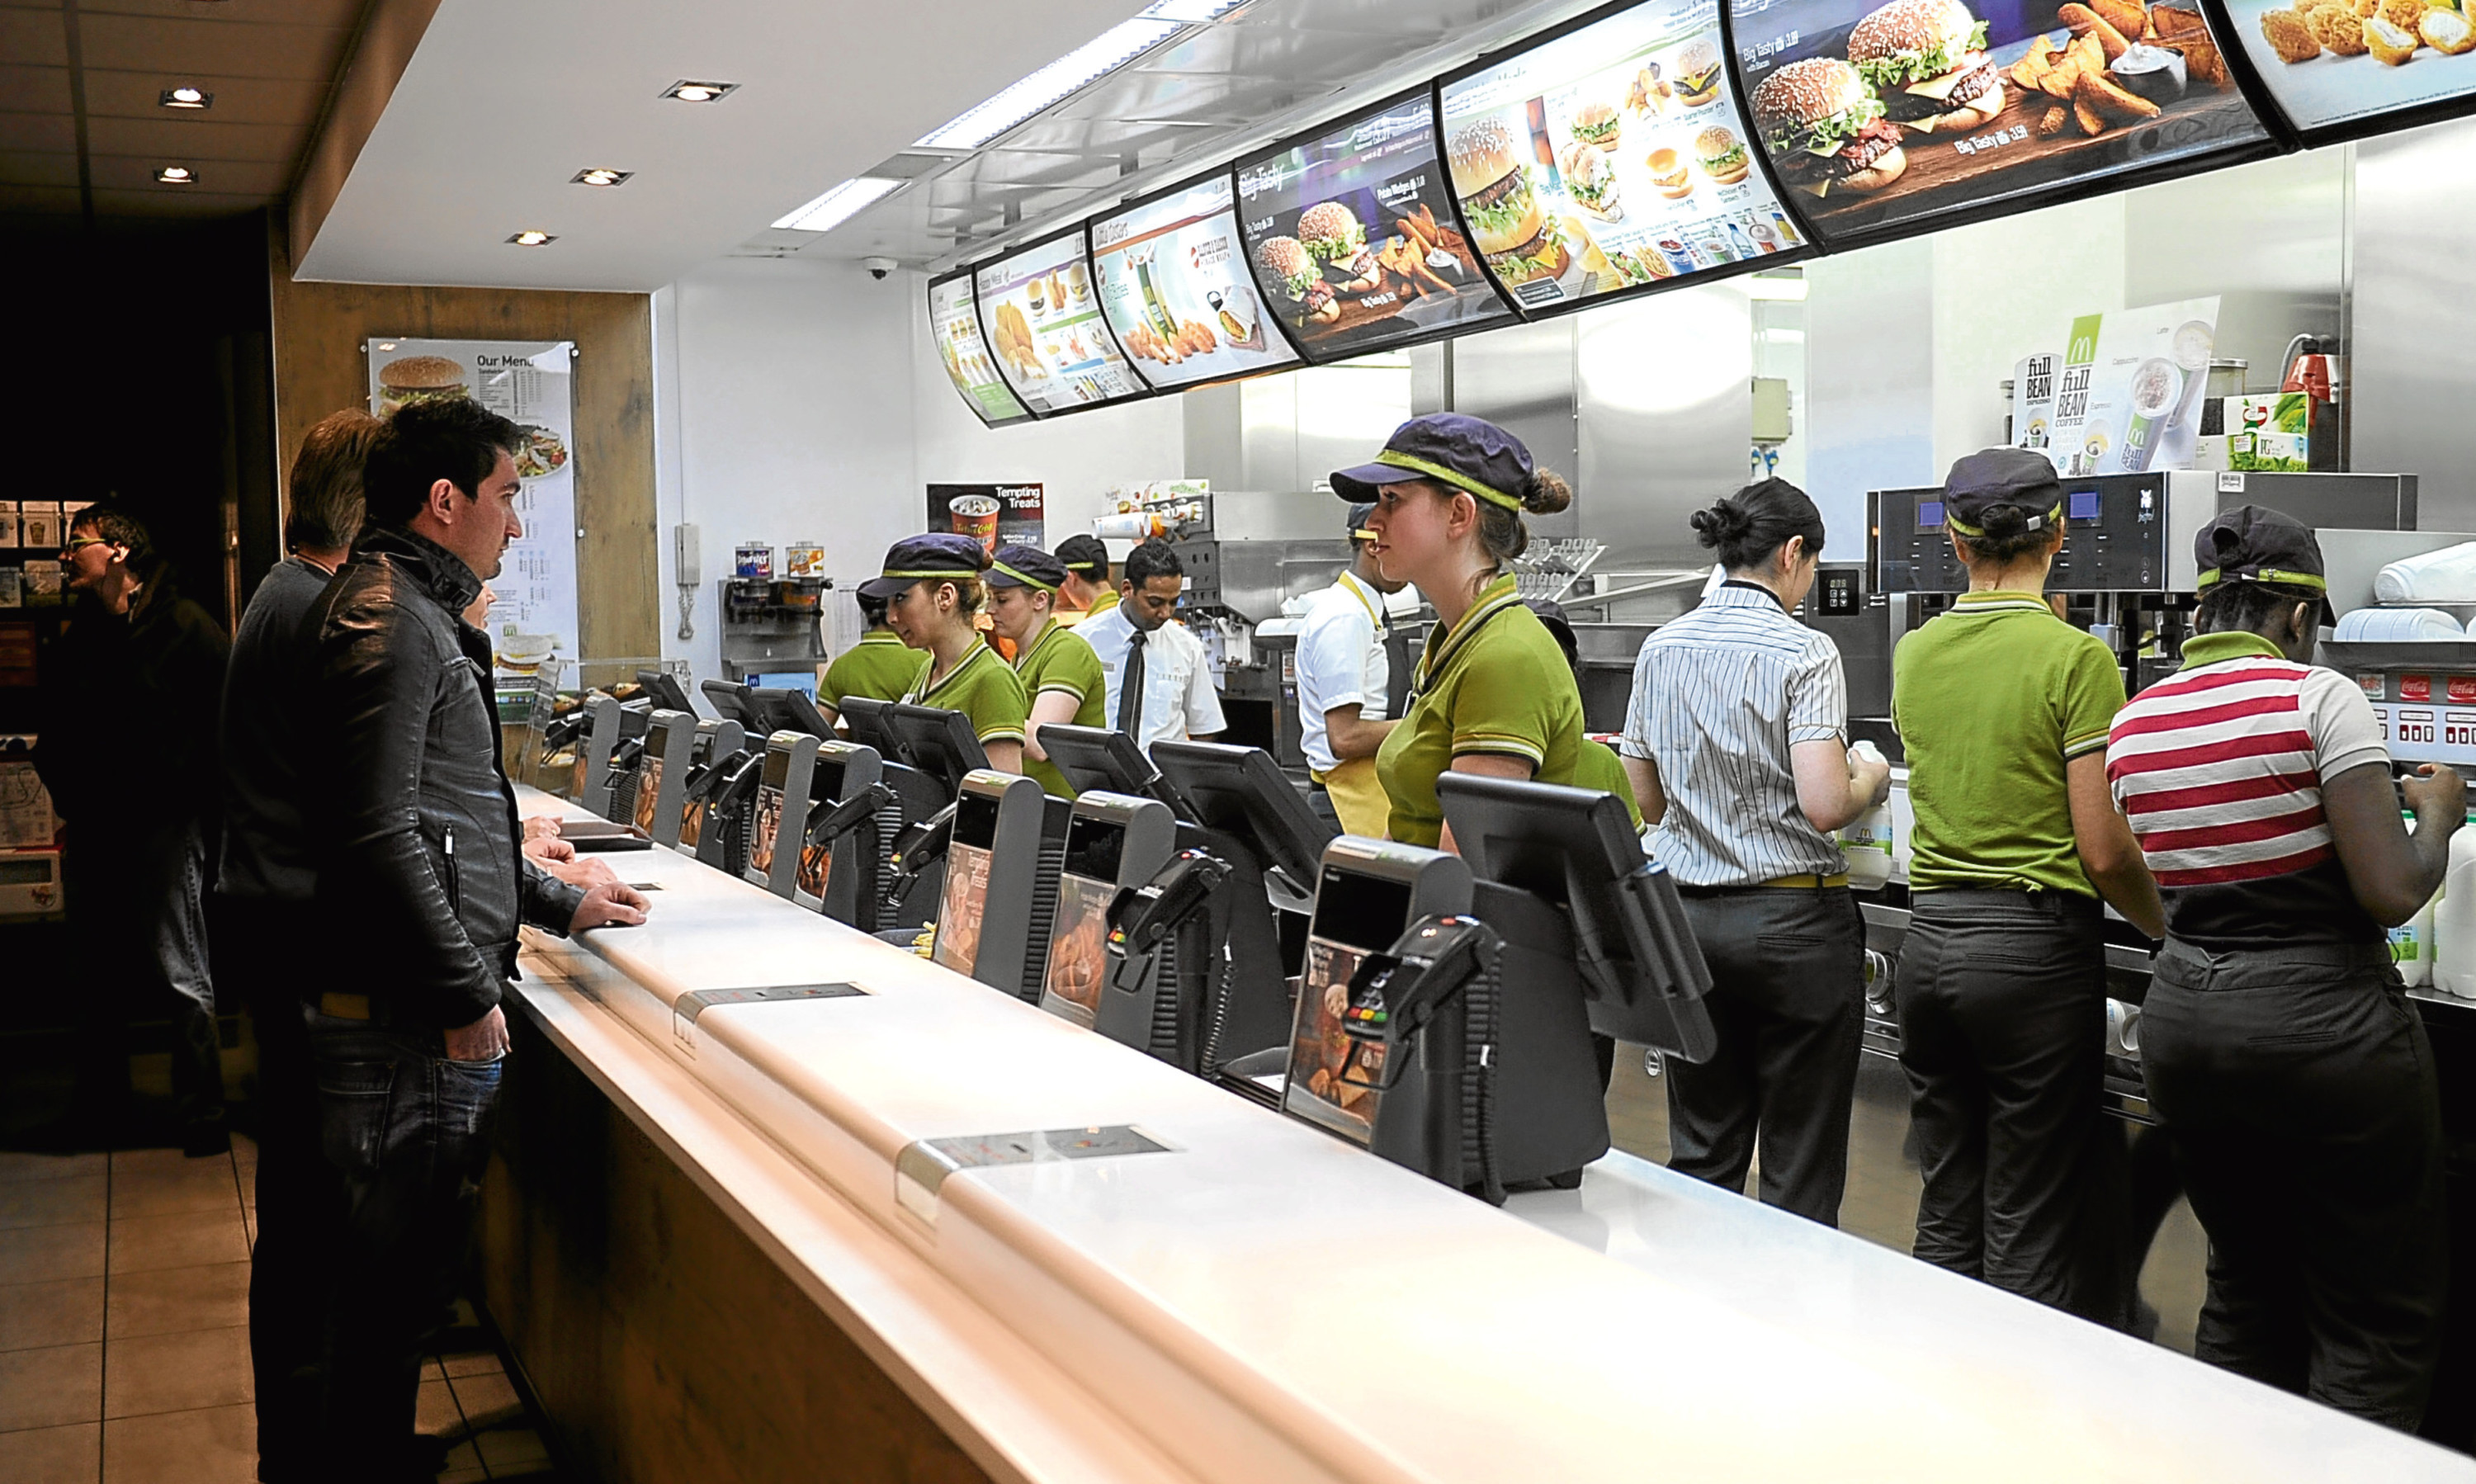 McDonalds have trialled 'fully flexed' contracts for workers on zero hours to limited success